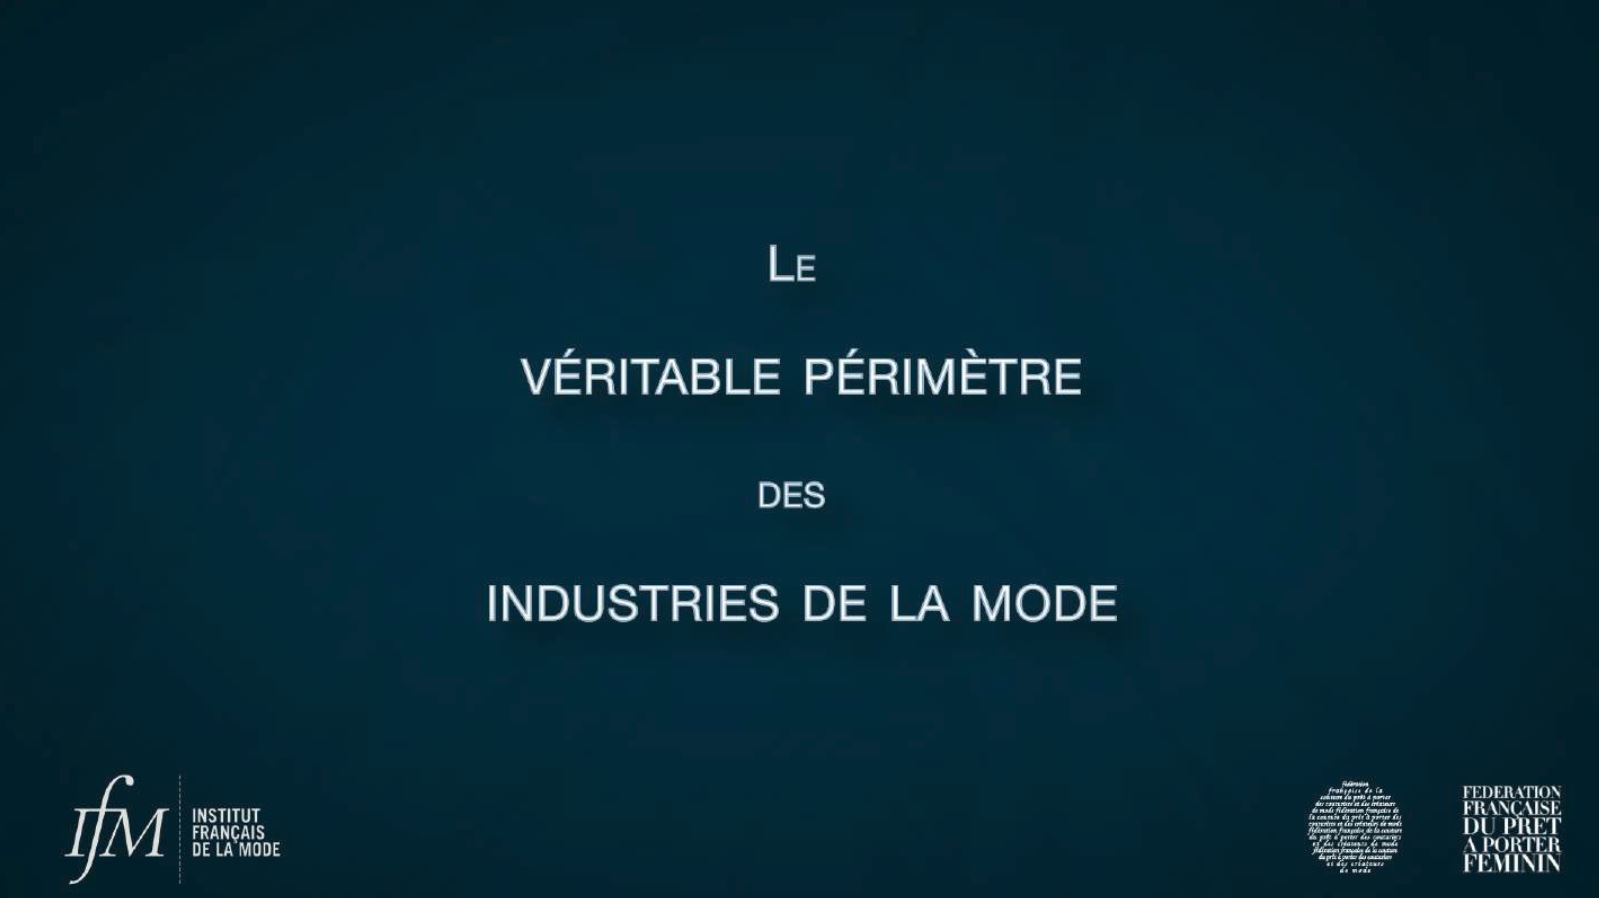 industries-de-la-mode